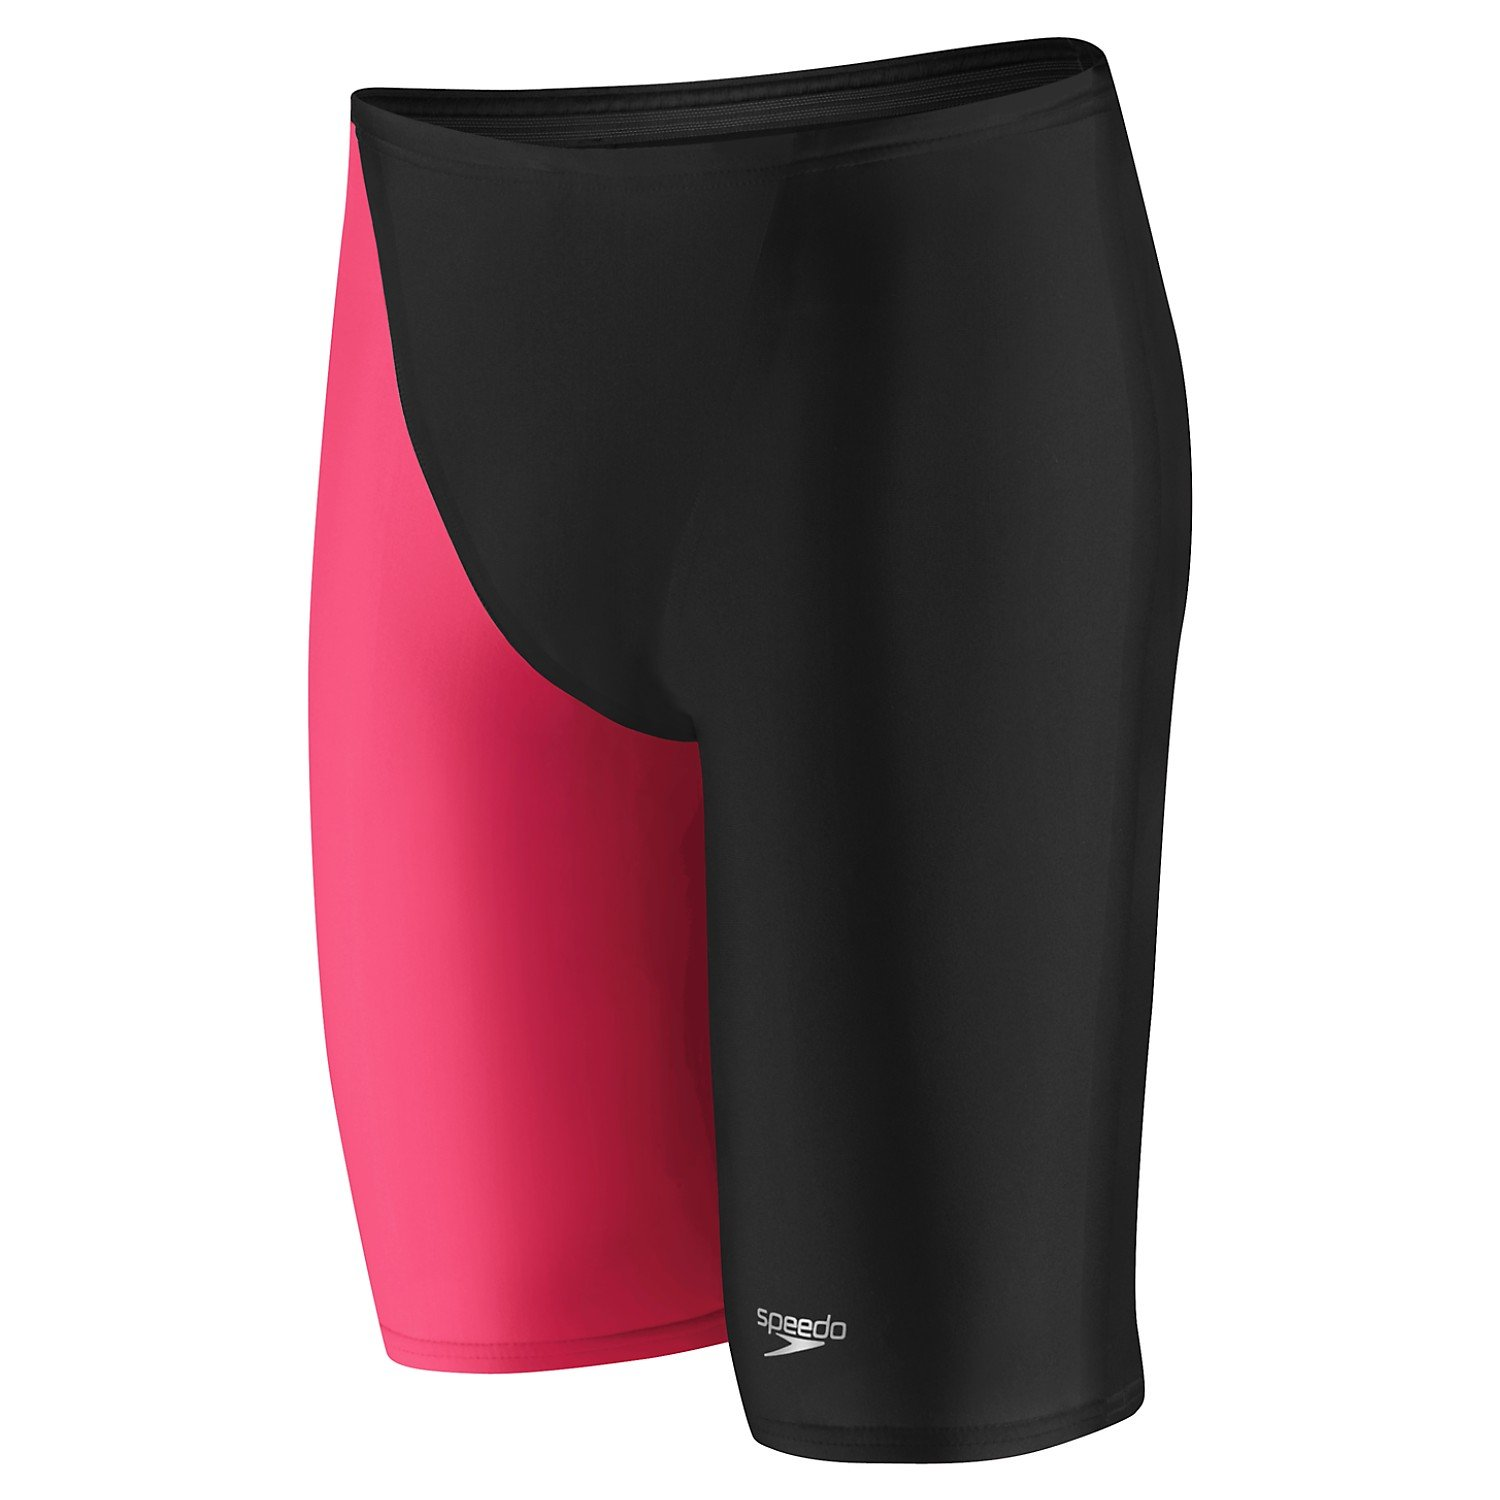 Speedo LZR Elite 2 High Waist Jammer,Hot Coral (007),28